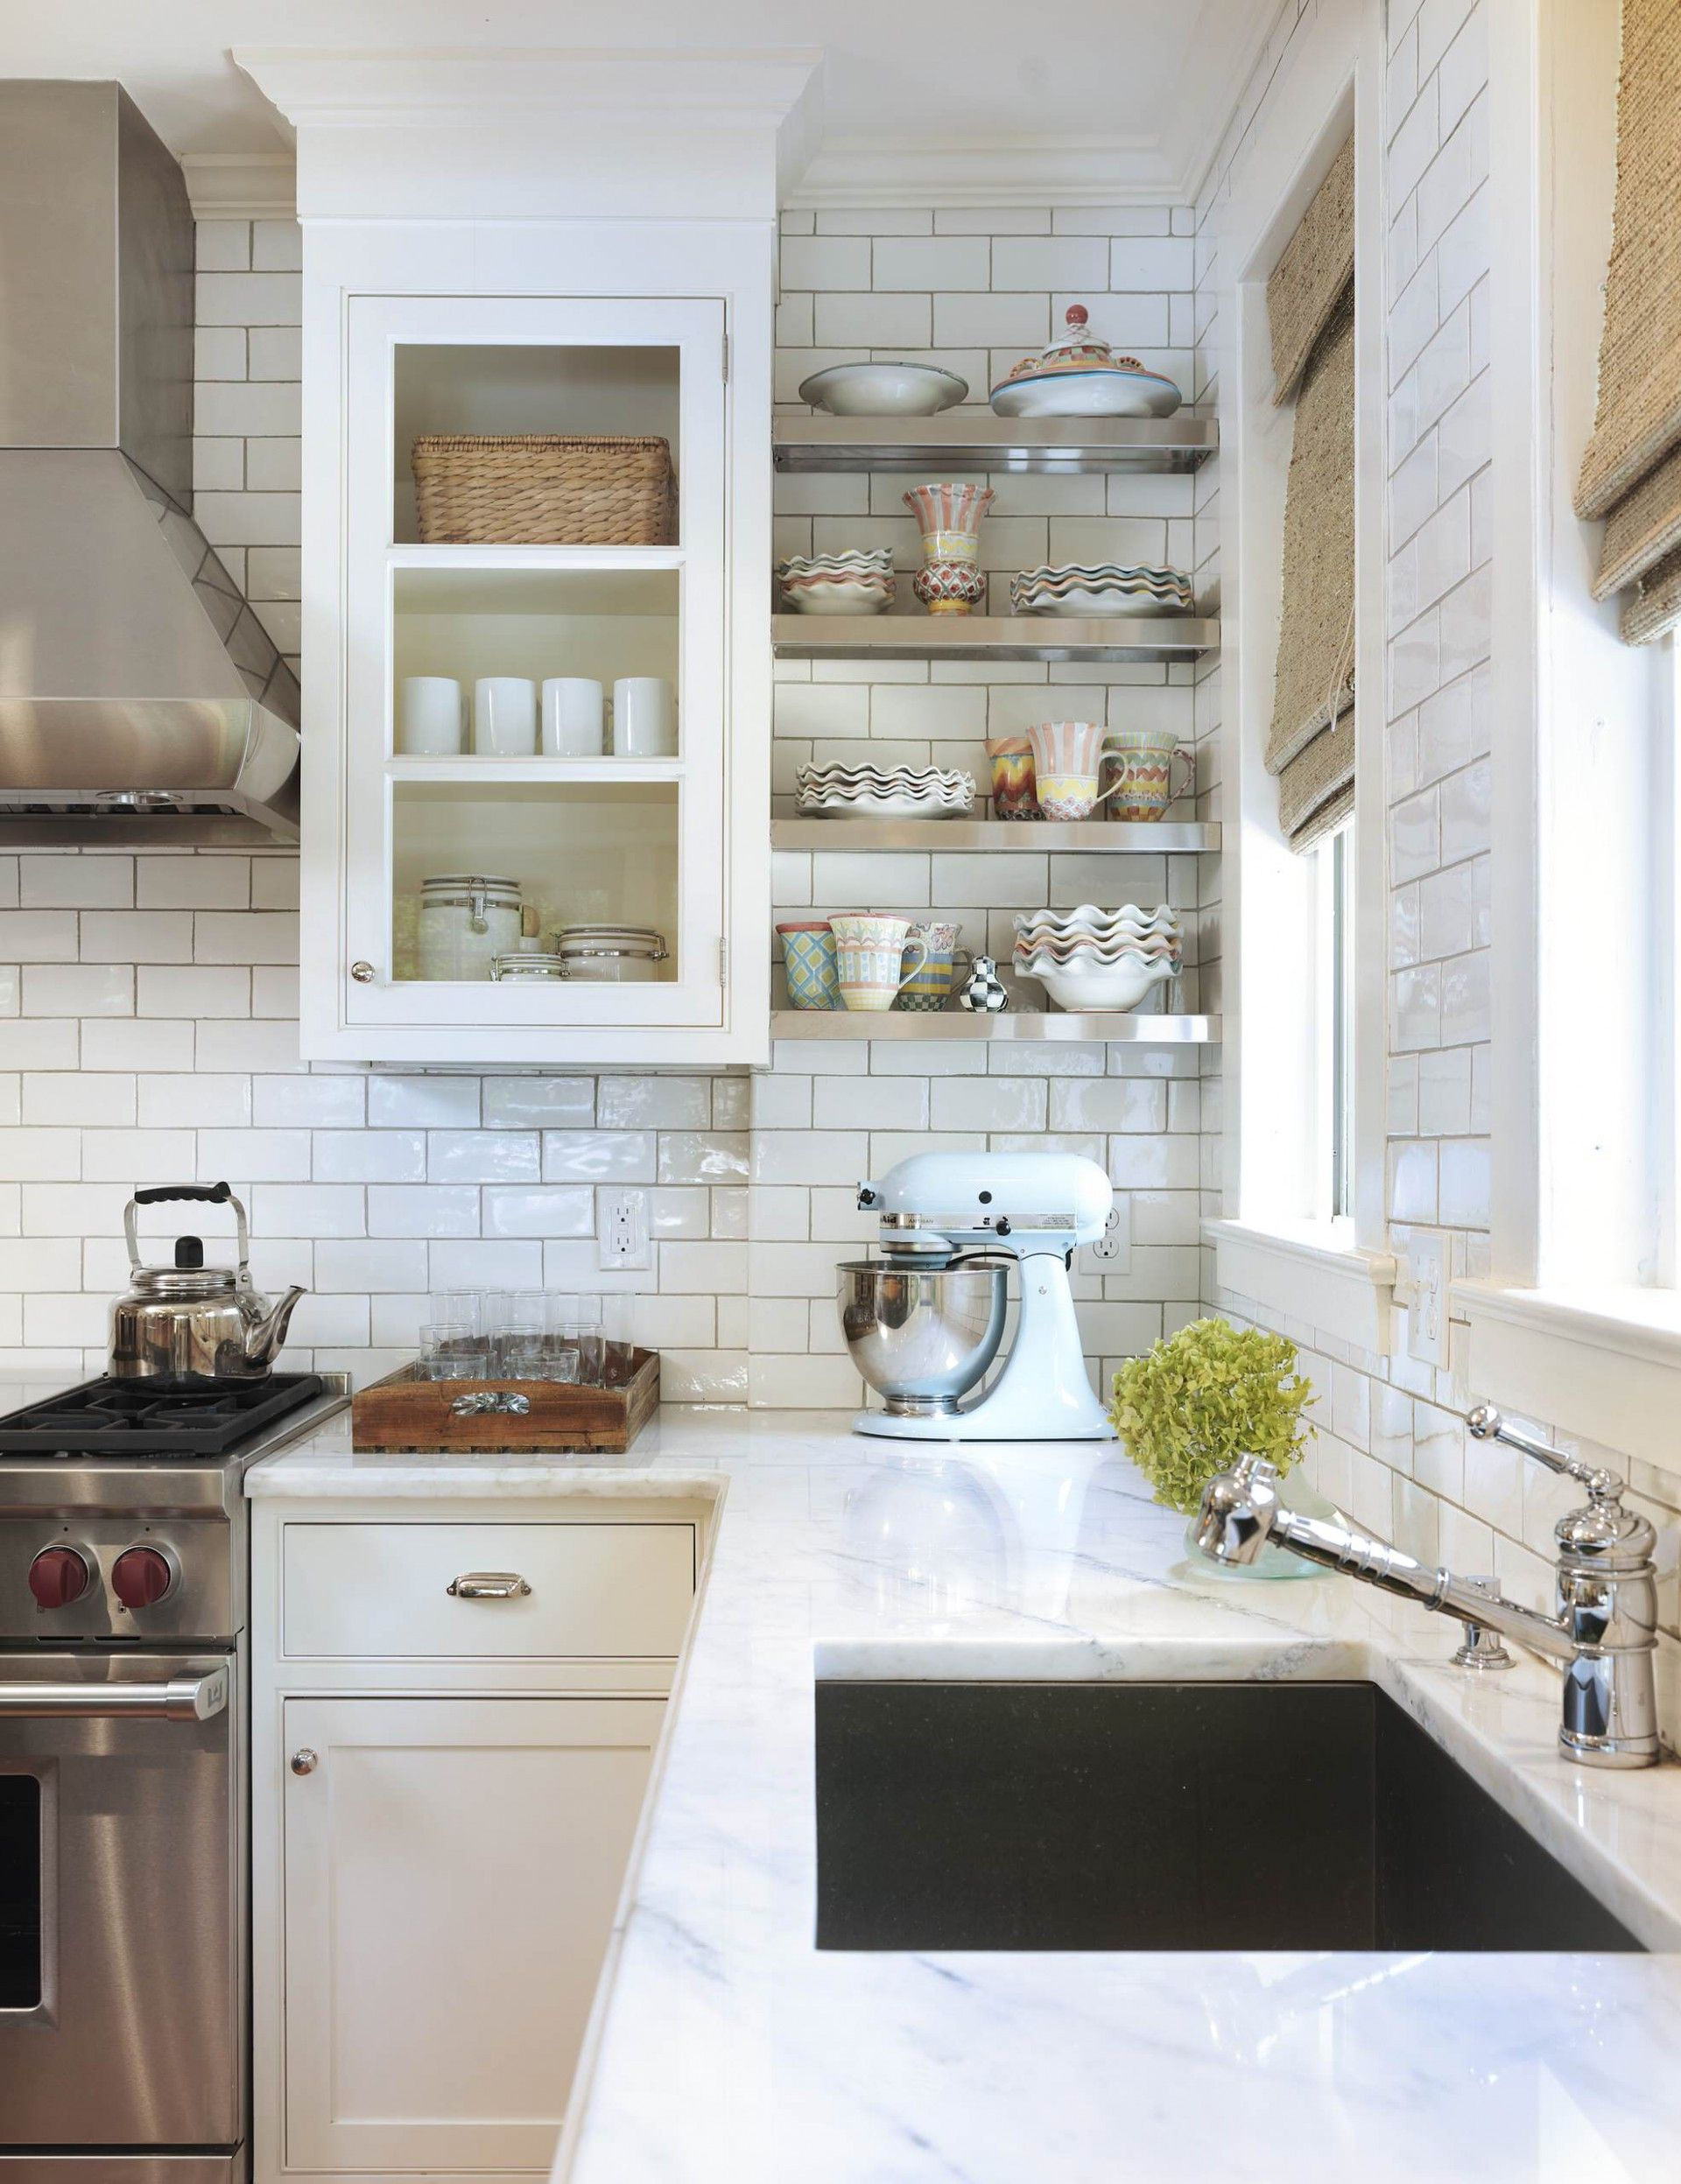 Picture of White Ceramic Subway Tile Backsplash Design | DIY ...